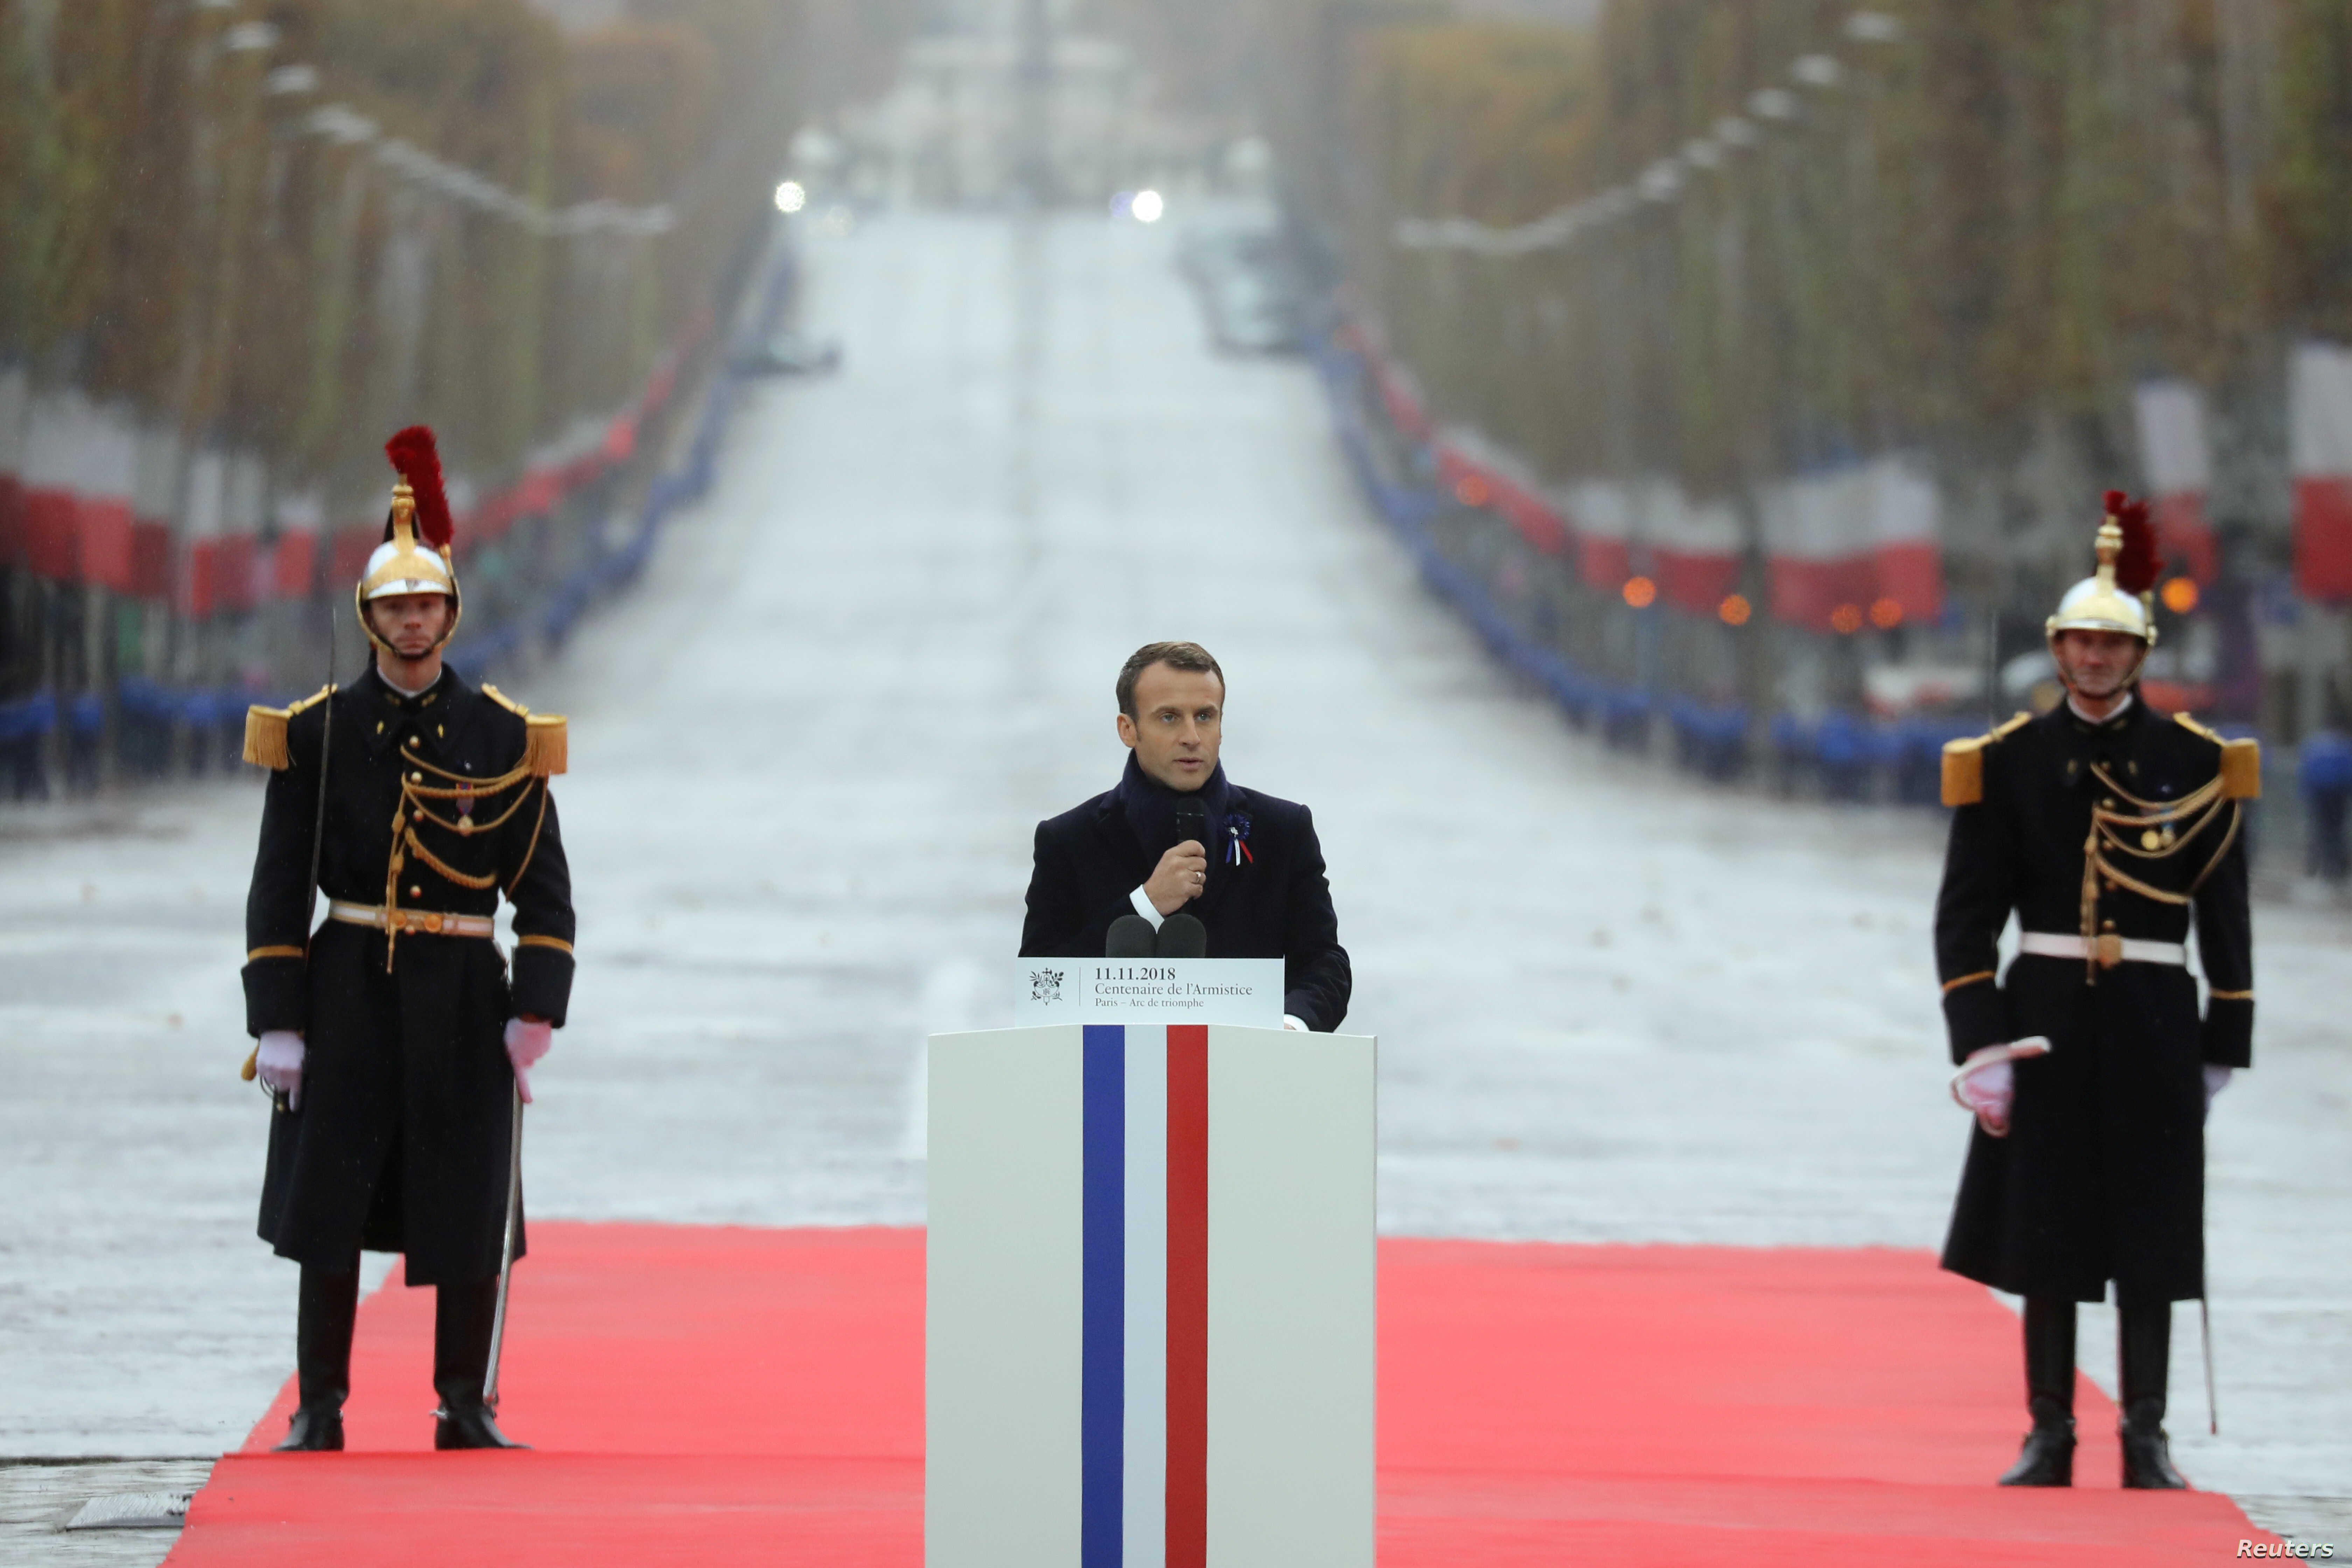 French President Emmanuel Macron delivers a speech during a commemoration ceremony for Armistice Day, 100 years after the end of the First World War at the Arc de Triomphe, in Paris, Nov. 11, 2018.